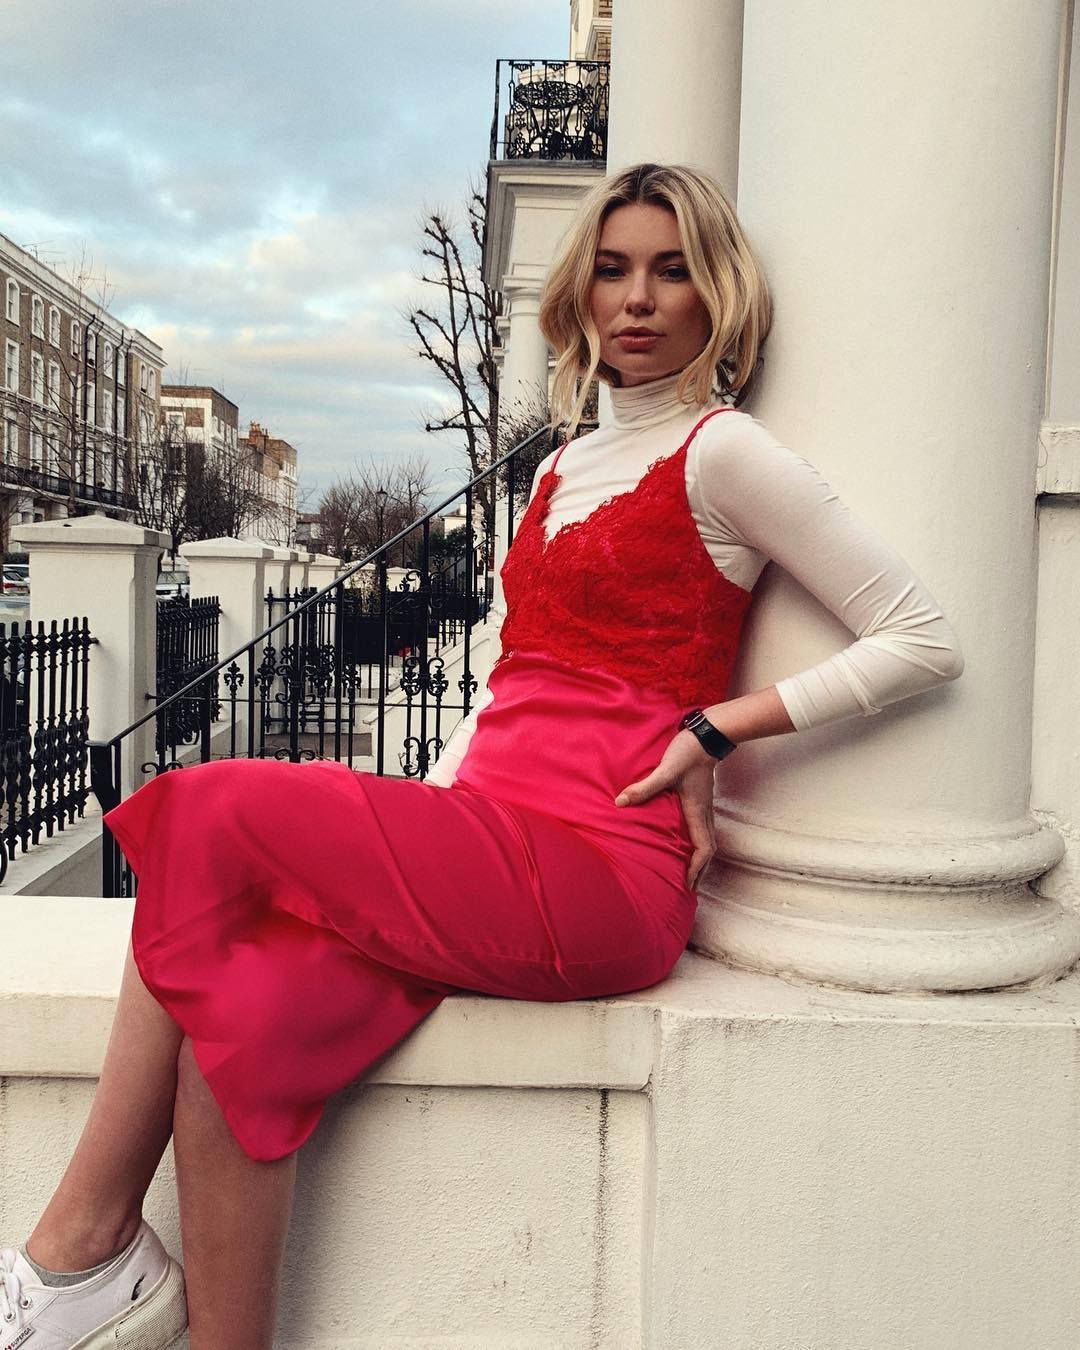 Image may contain: Made in Chelsea cast now, Made in Chelsea, cast, then, now, before, after, iconic, original, Toff, Georgia Toffolo, Woman, Dress, Sleeve, Female, Footwear, Shoe, Person, Human, Robe, Gown, Evening Dress, Fashion, Apparel, Clothing